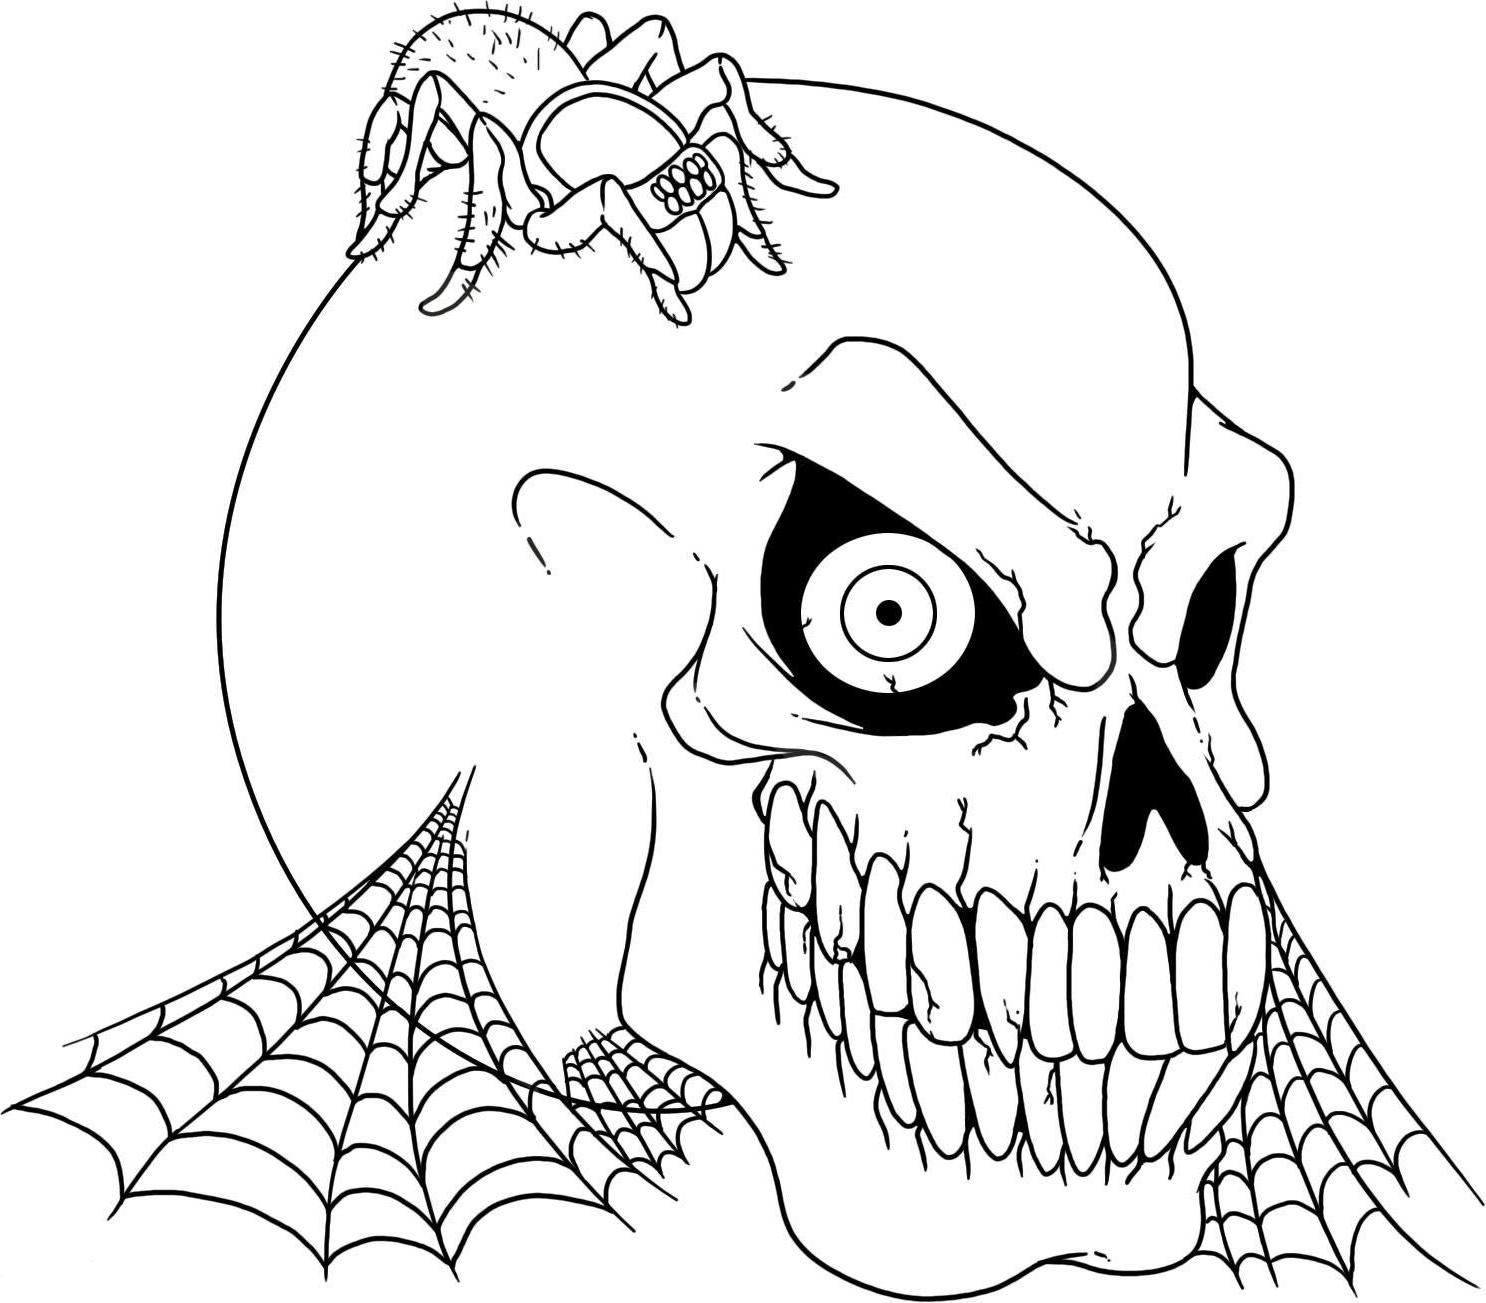 Scary Halloween Coloring Pages Skull Coloring Pages Halloween